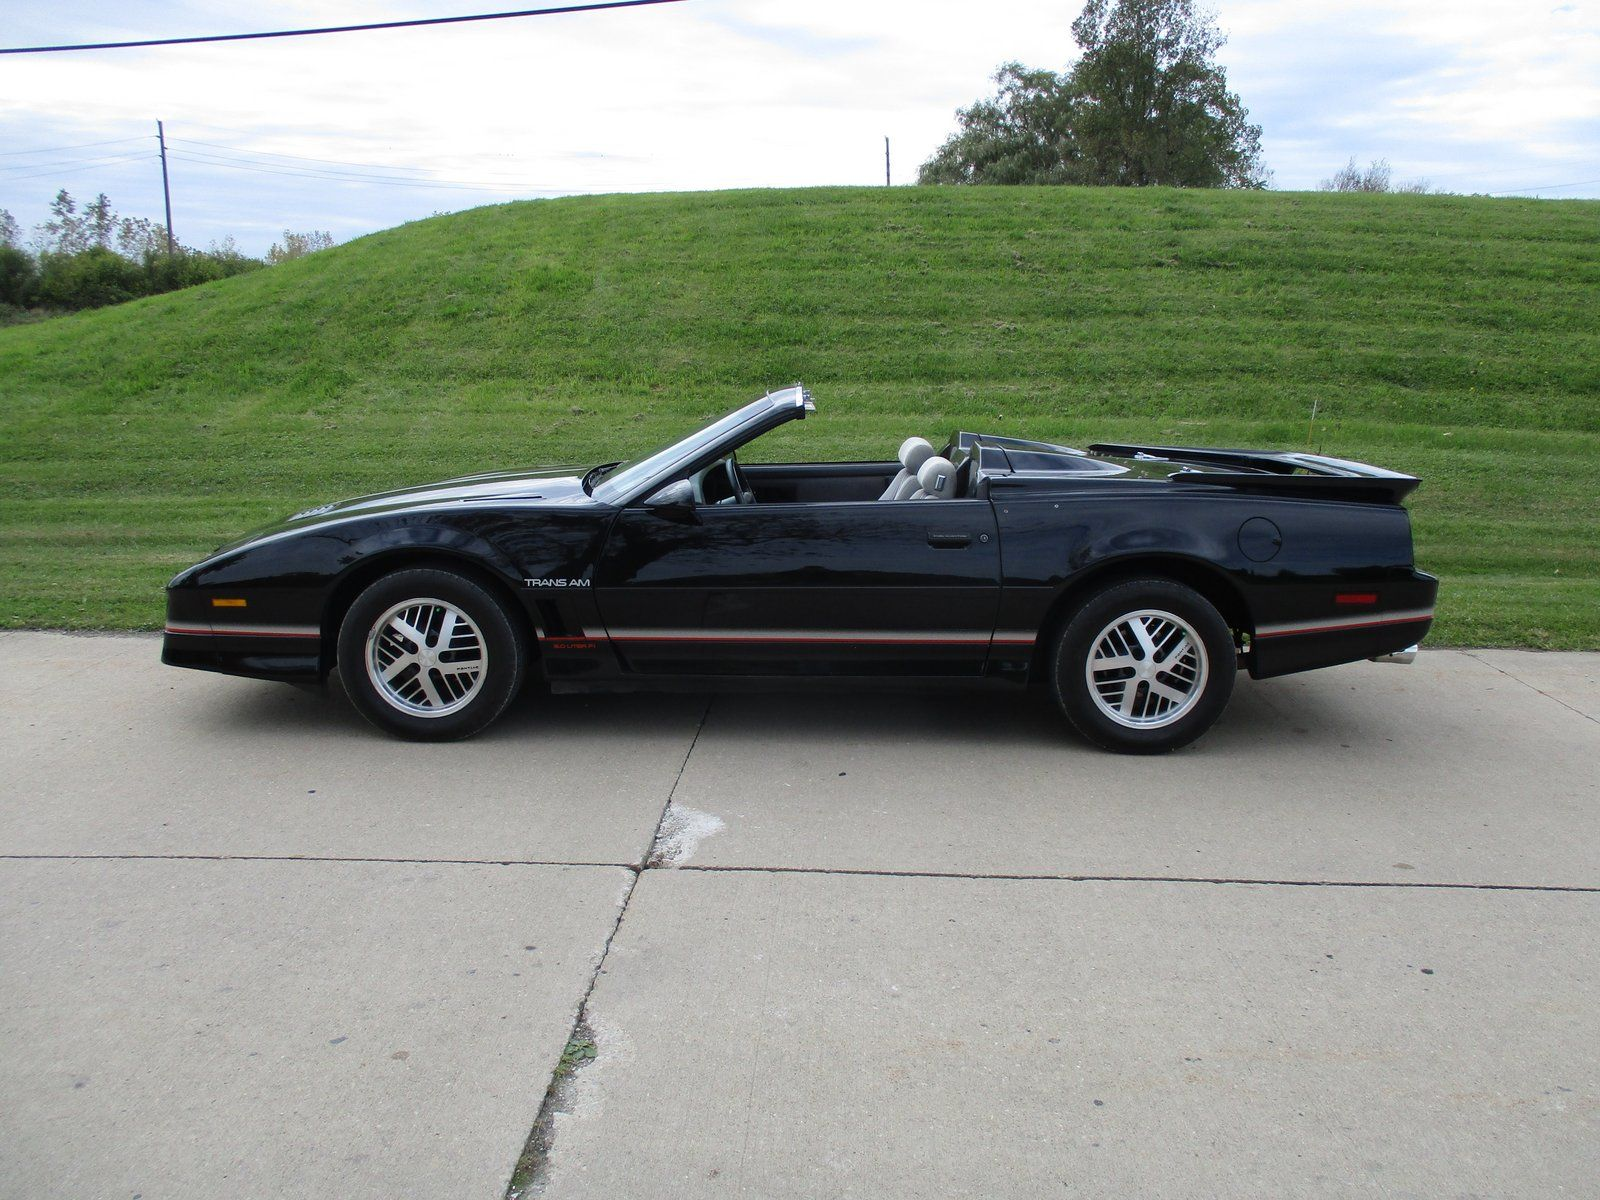 1986 pontiac firebird autoform roadster for sale autabuy com 1986 pontiac firebird autoform roadster for sale autabuy com